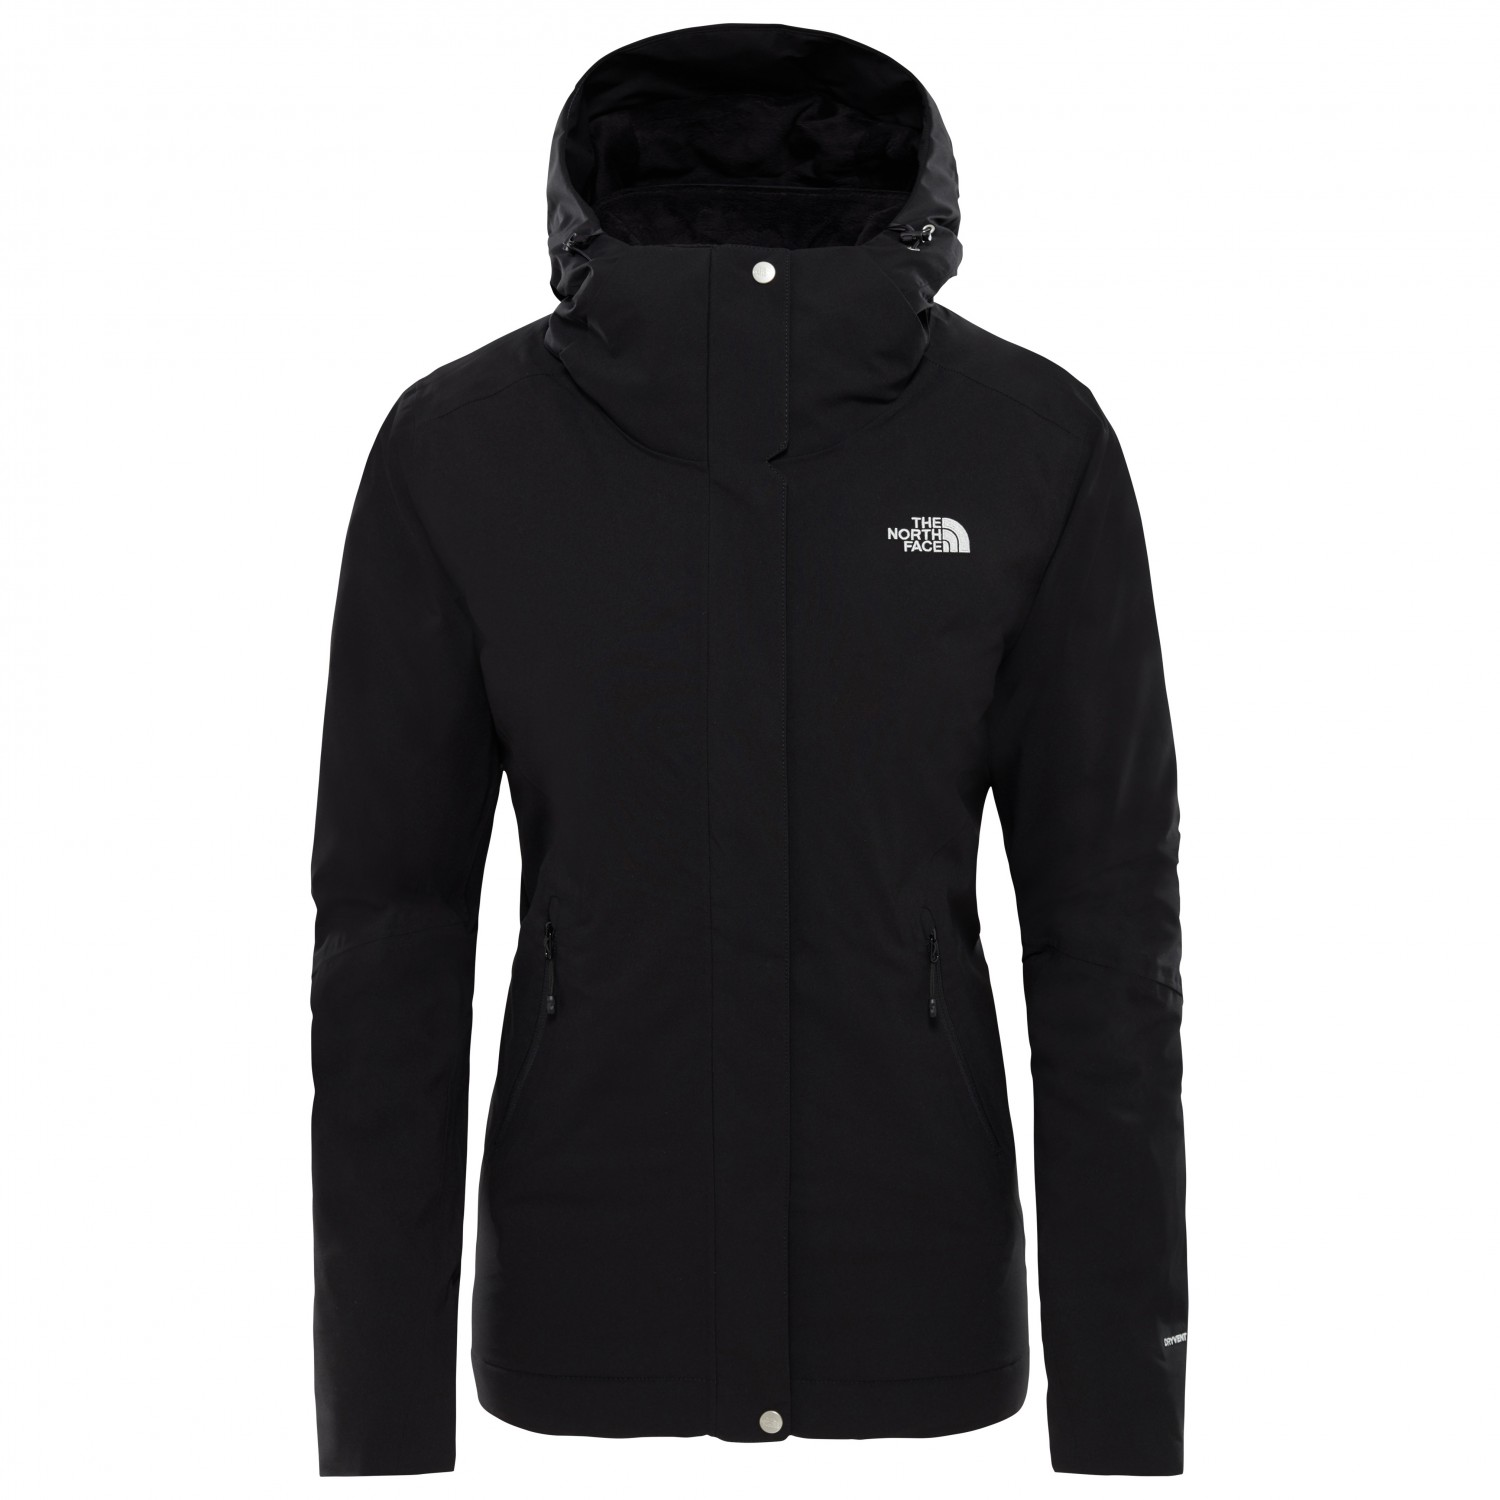 a170931cc The North Face - Women's Inlux Insulated Jacket - Winter jacket - Cardinal  Red | XS